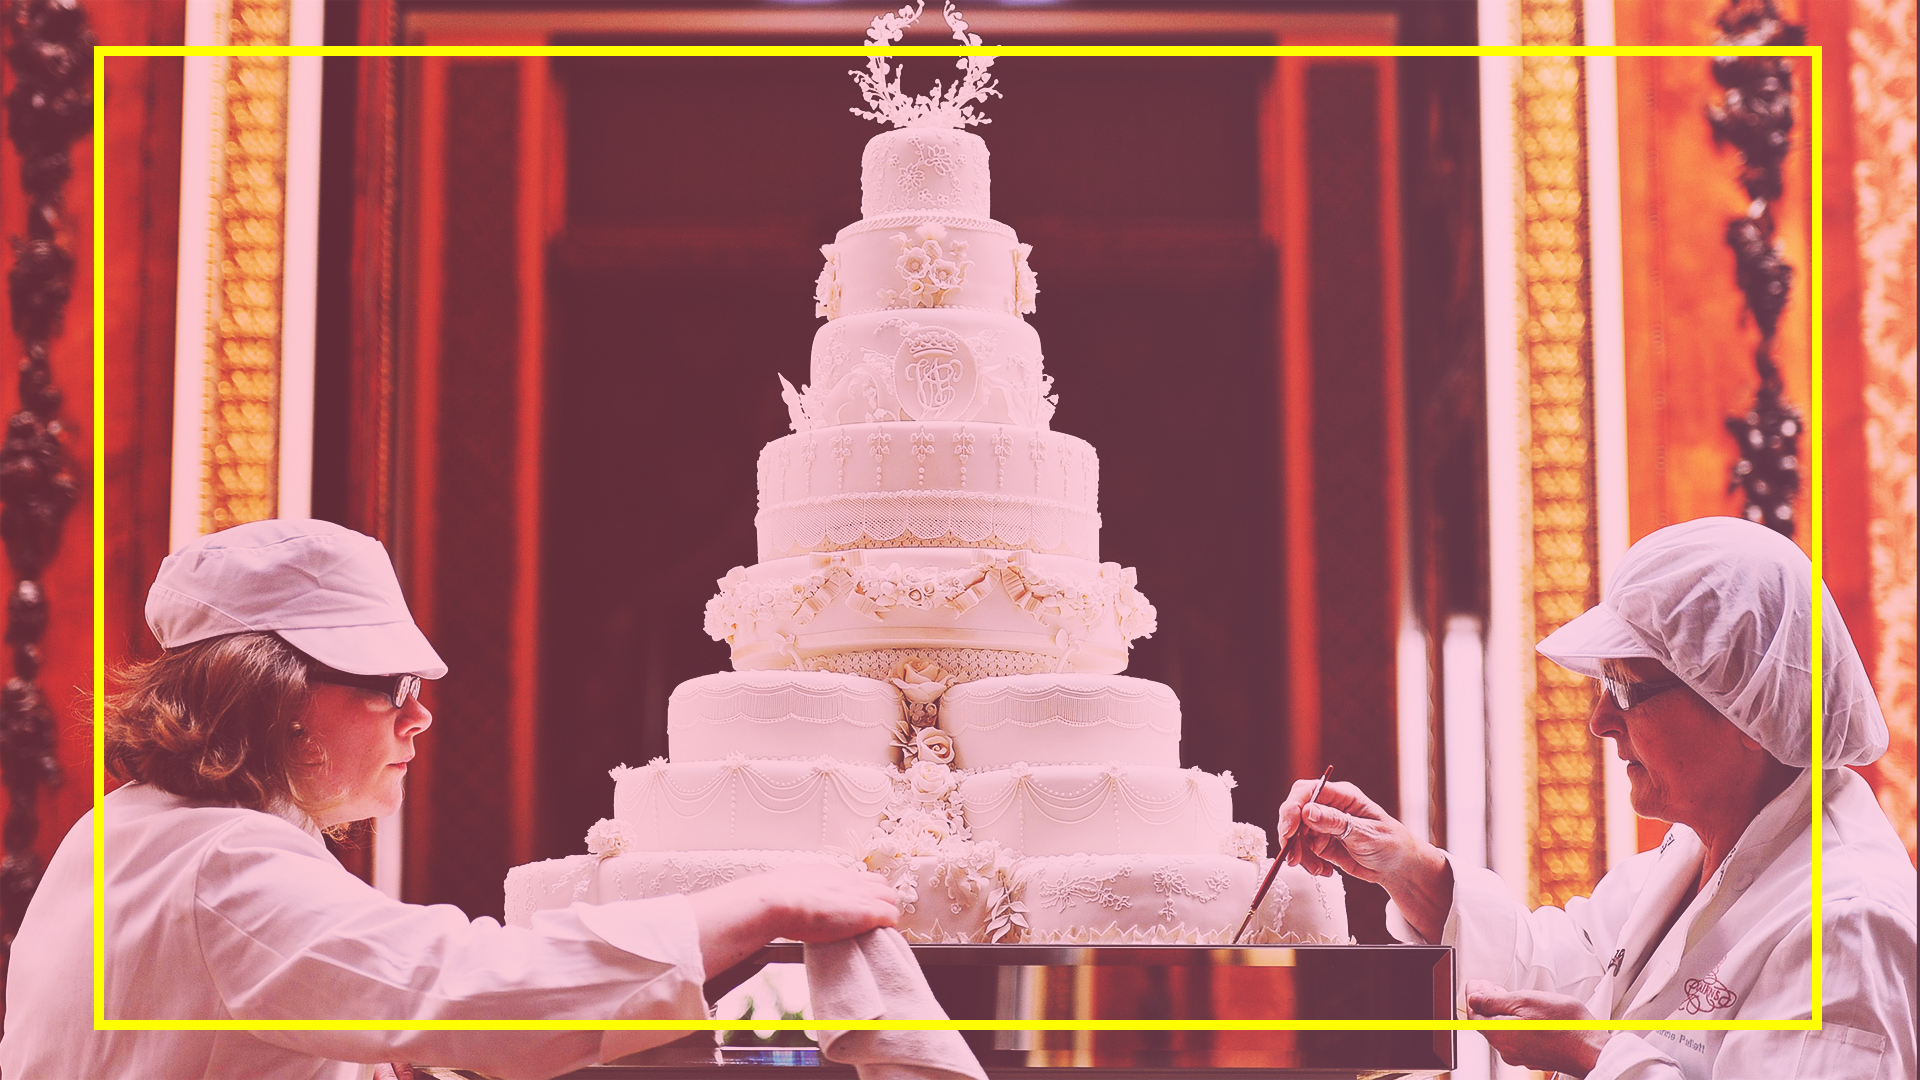 A Look At The Most Extravagant Royal Wedding Cakes Sheknows